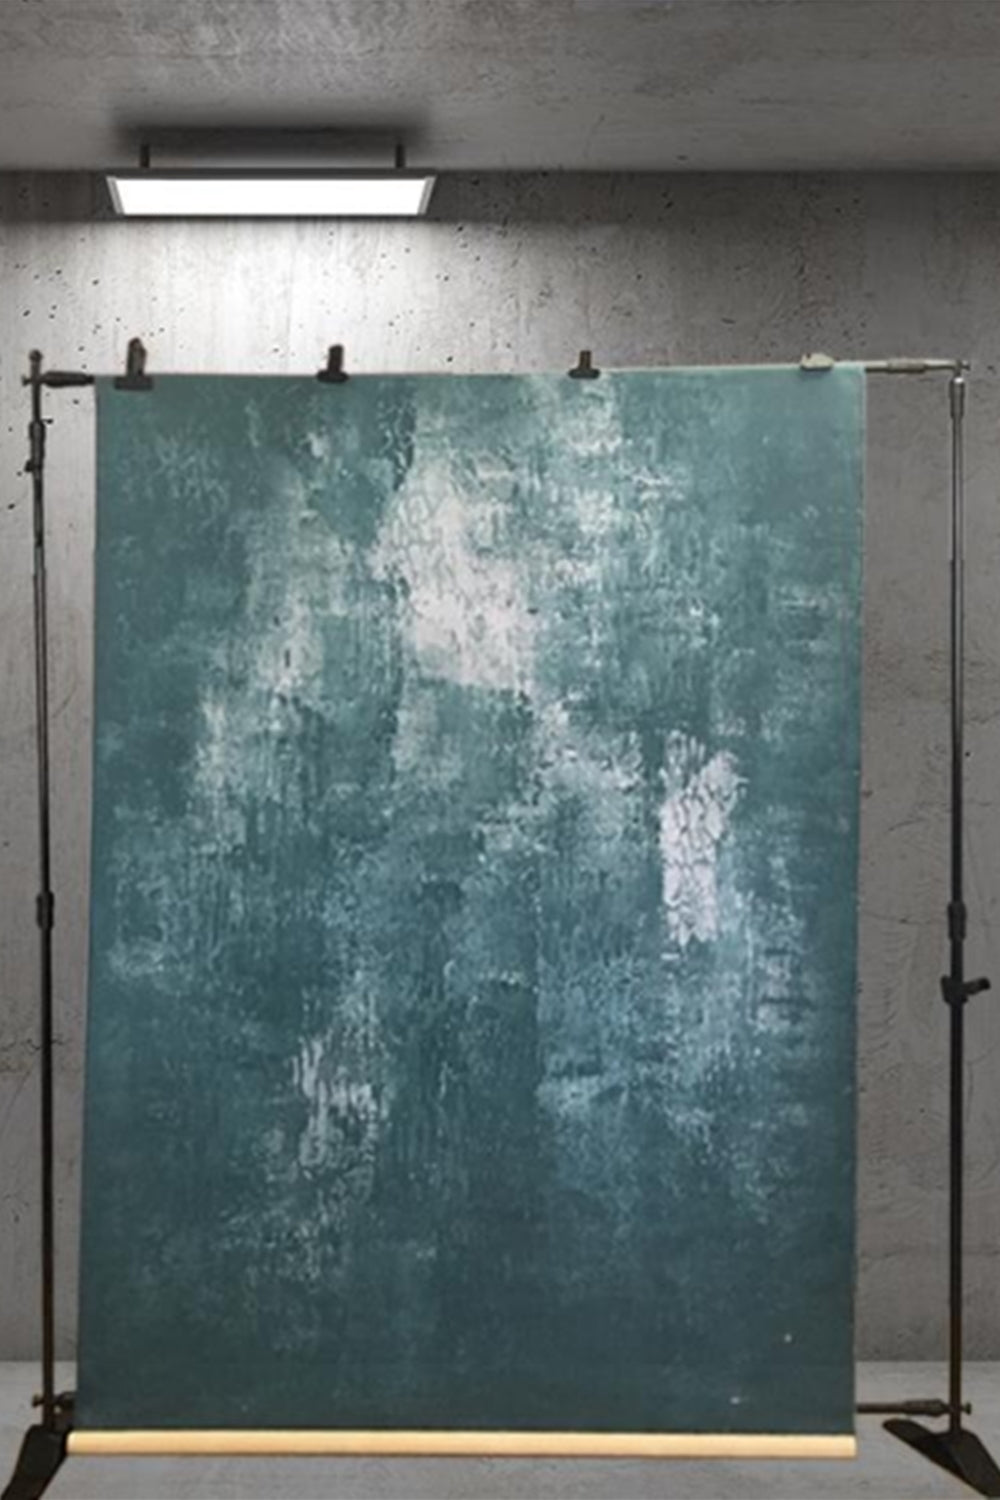 Clotstudio Abstract Teal Grey Spray Textured Hand Painted Canvas Backdrop #clot 2-Strong Textured-CLOT STUDIO-custom hand painted canvas studio photo backdrops handmade photography backgrounds